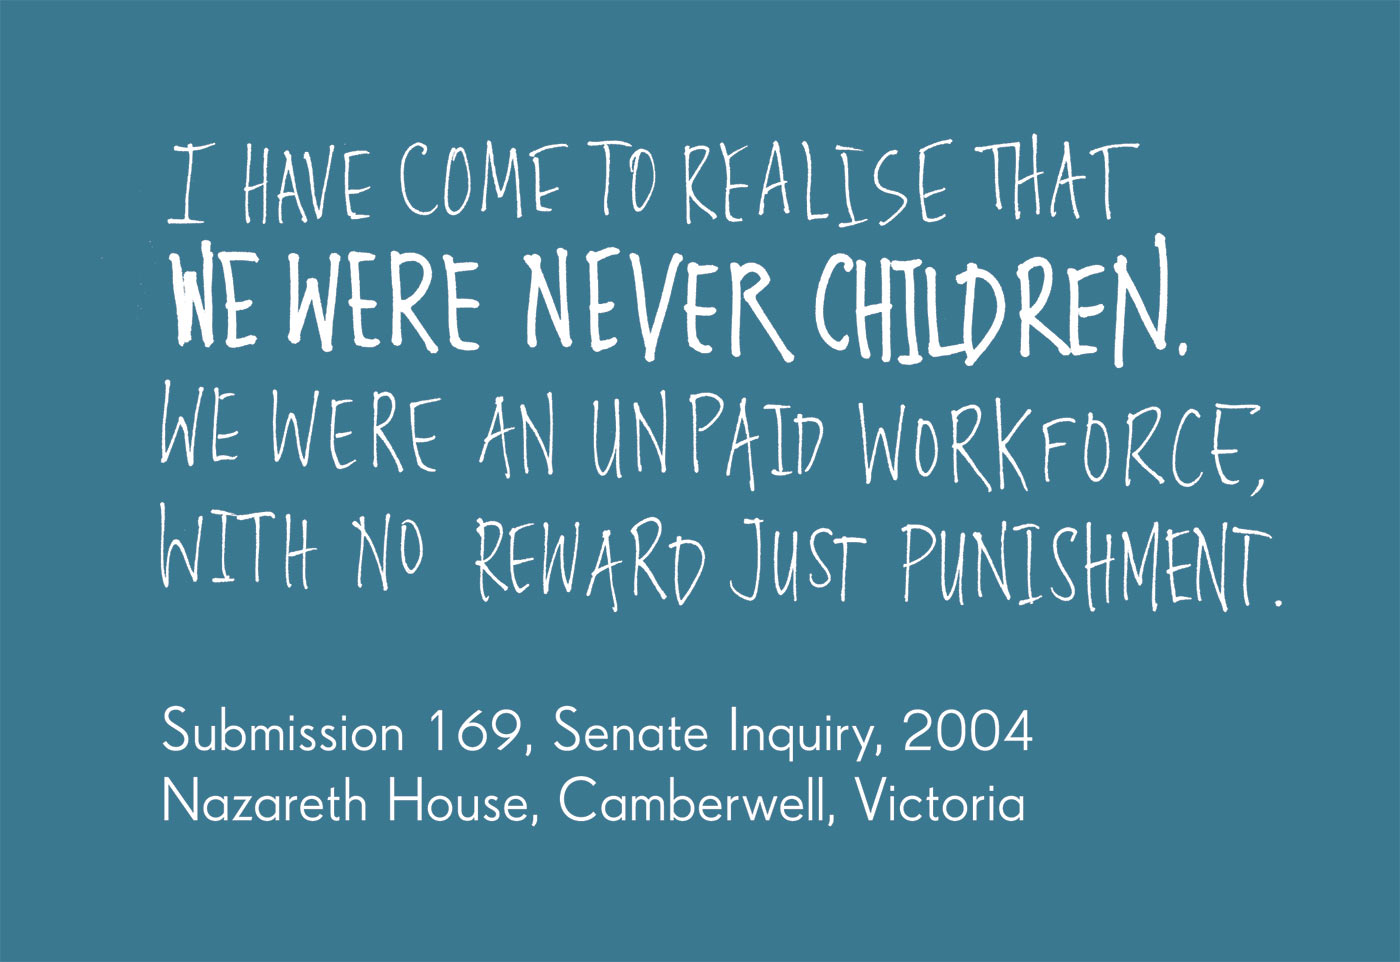 Exhibition graphic panel that reads: 'I have come to realise that we were never children. We were an unpaid workforce, with no reward just punishment', attributed to 'Submission 169, Senate Inquiry, 2004, Nazareth House, Camberwell, Victoria, date unknown'. - click to view larger image